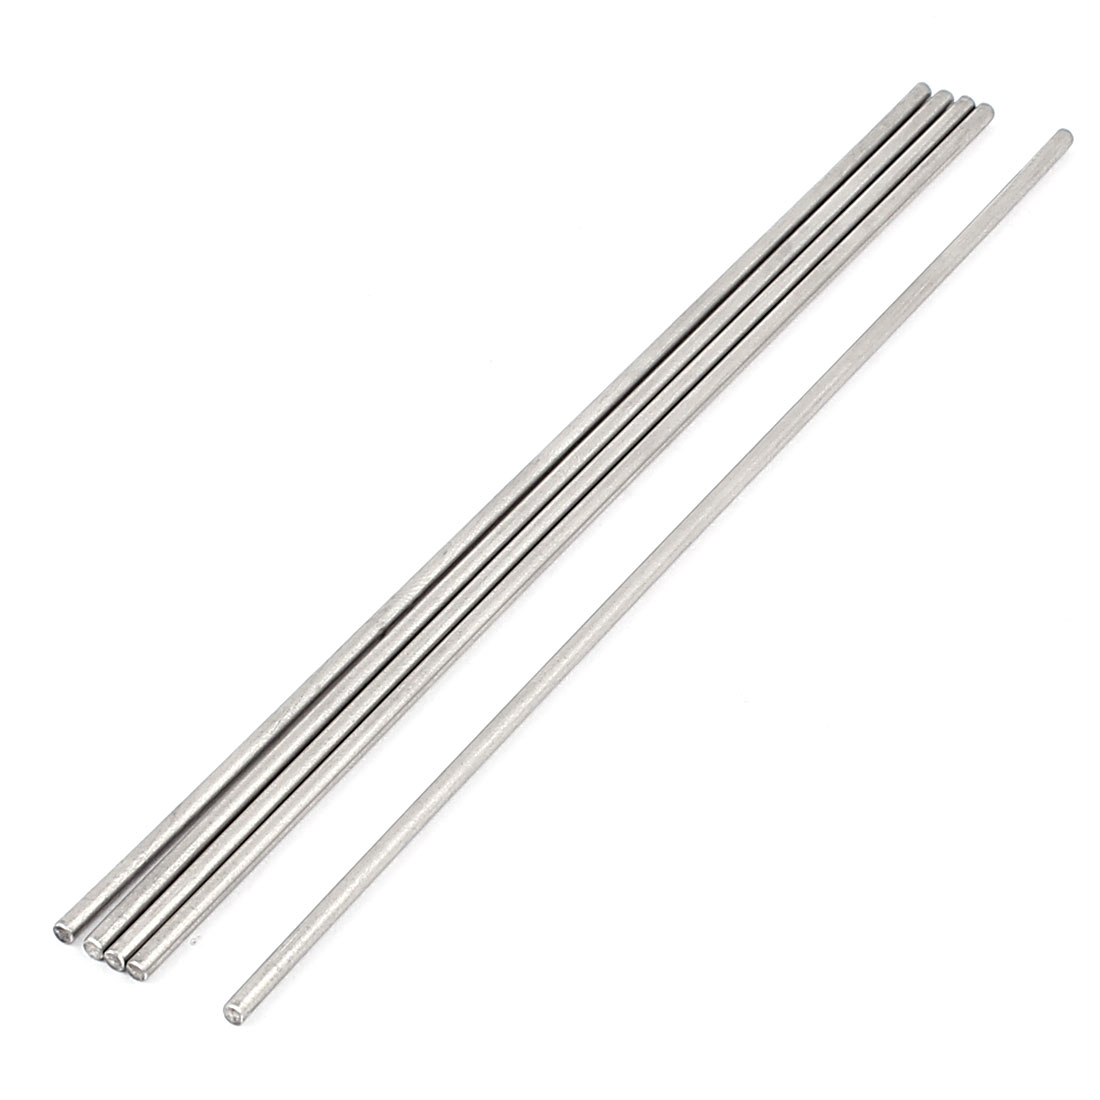 5 Pcs 3mm x 200mm DIY RC Car Toy Model Straight Metal Round Shaft Rod Bars